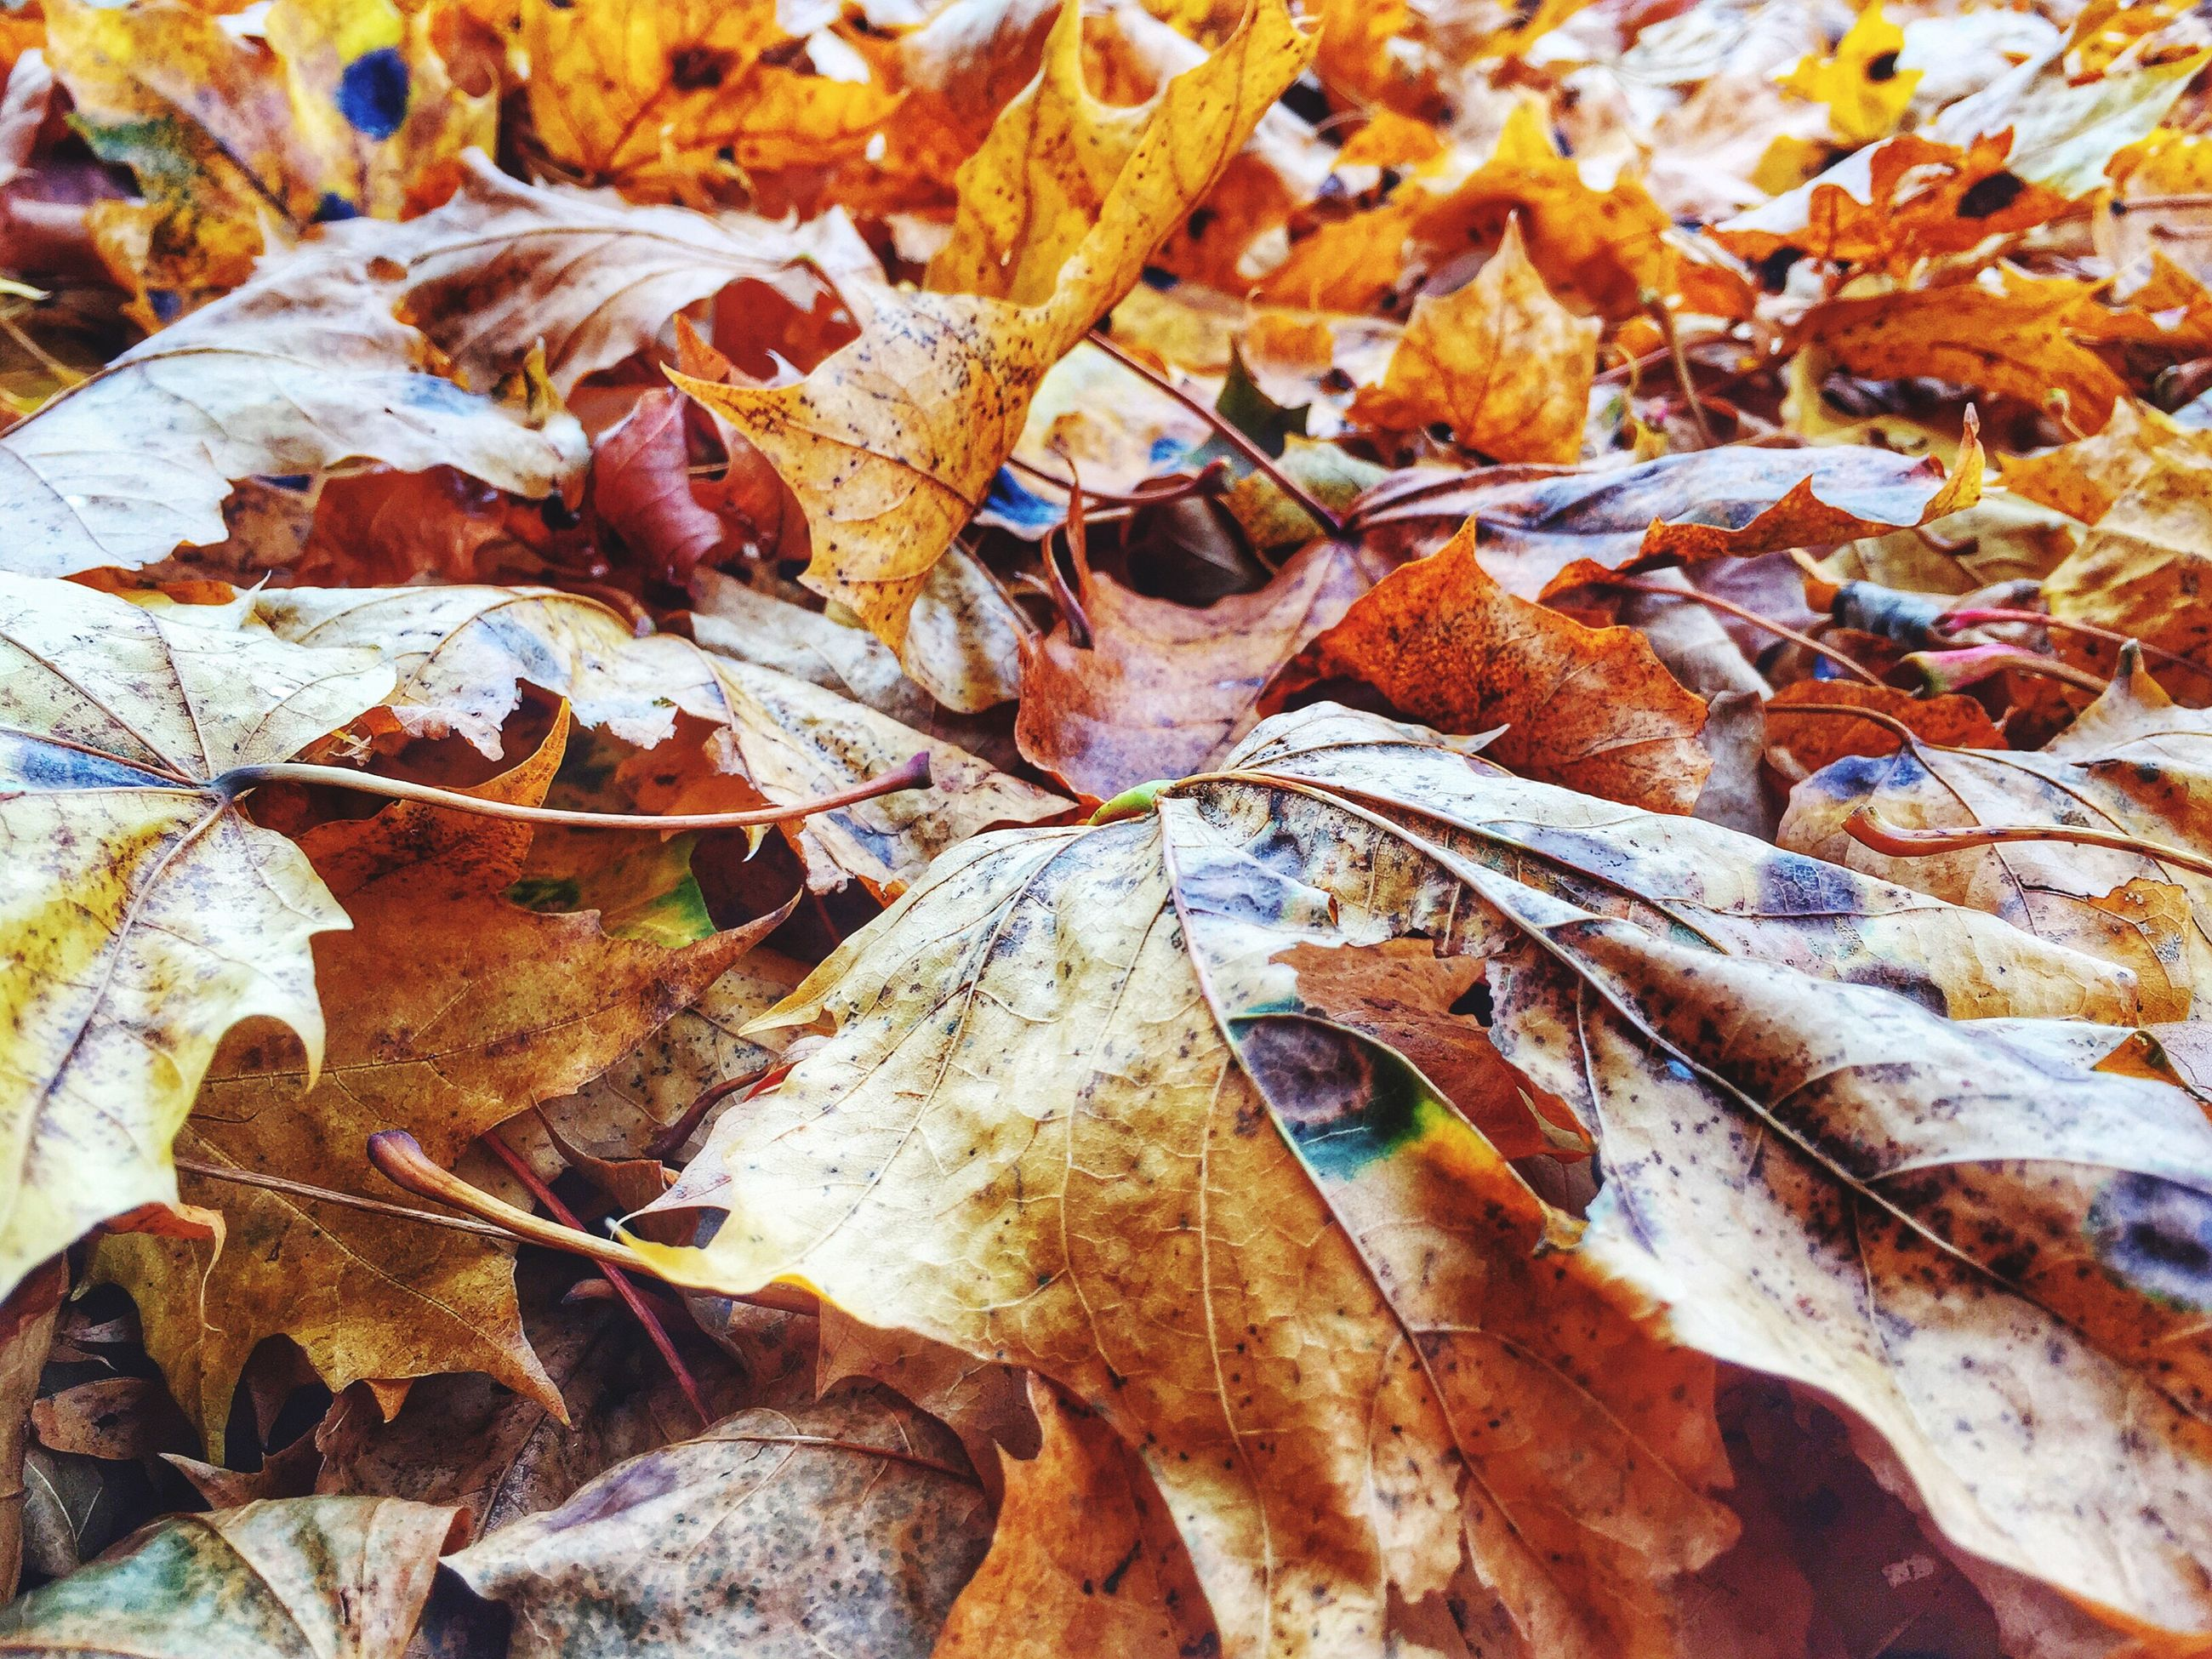 autumn, leaf, change, season, leaves, dry, nature, full frame, close-up, tranquility, natural pattern, backgrounds, fallen, day, maple leaf, tree, outdoors, beauty in nature, natural condition, no people